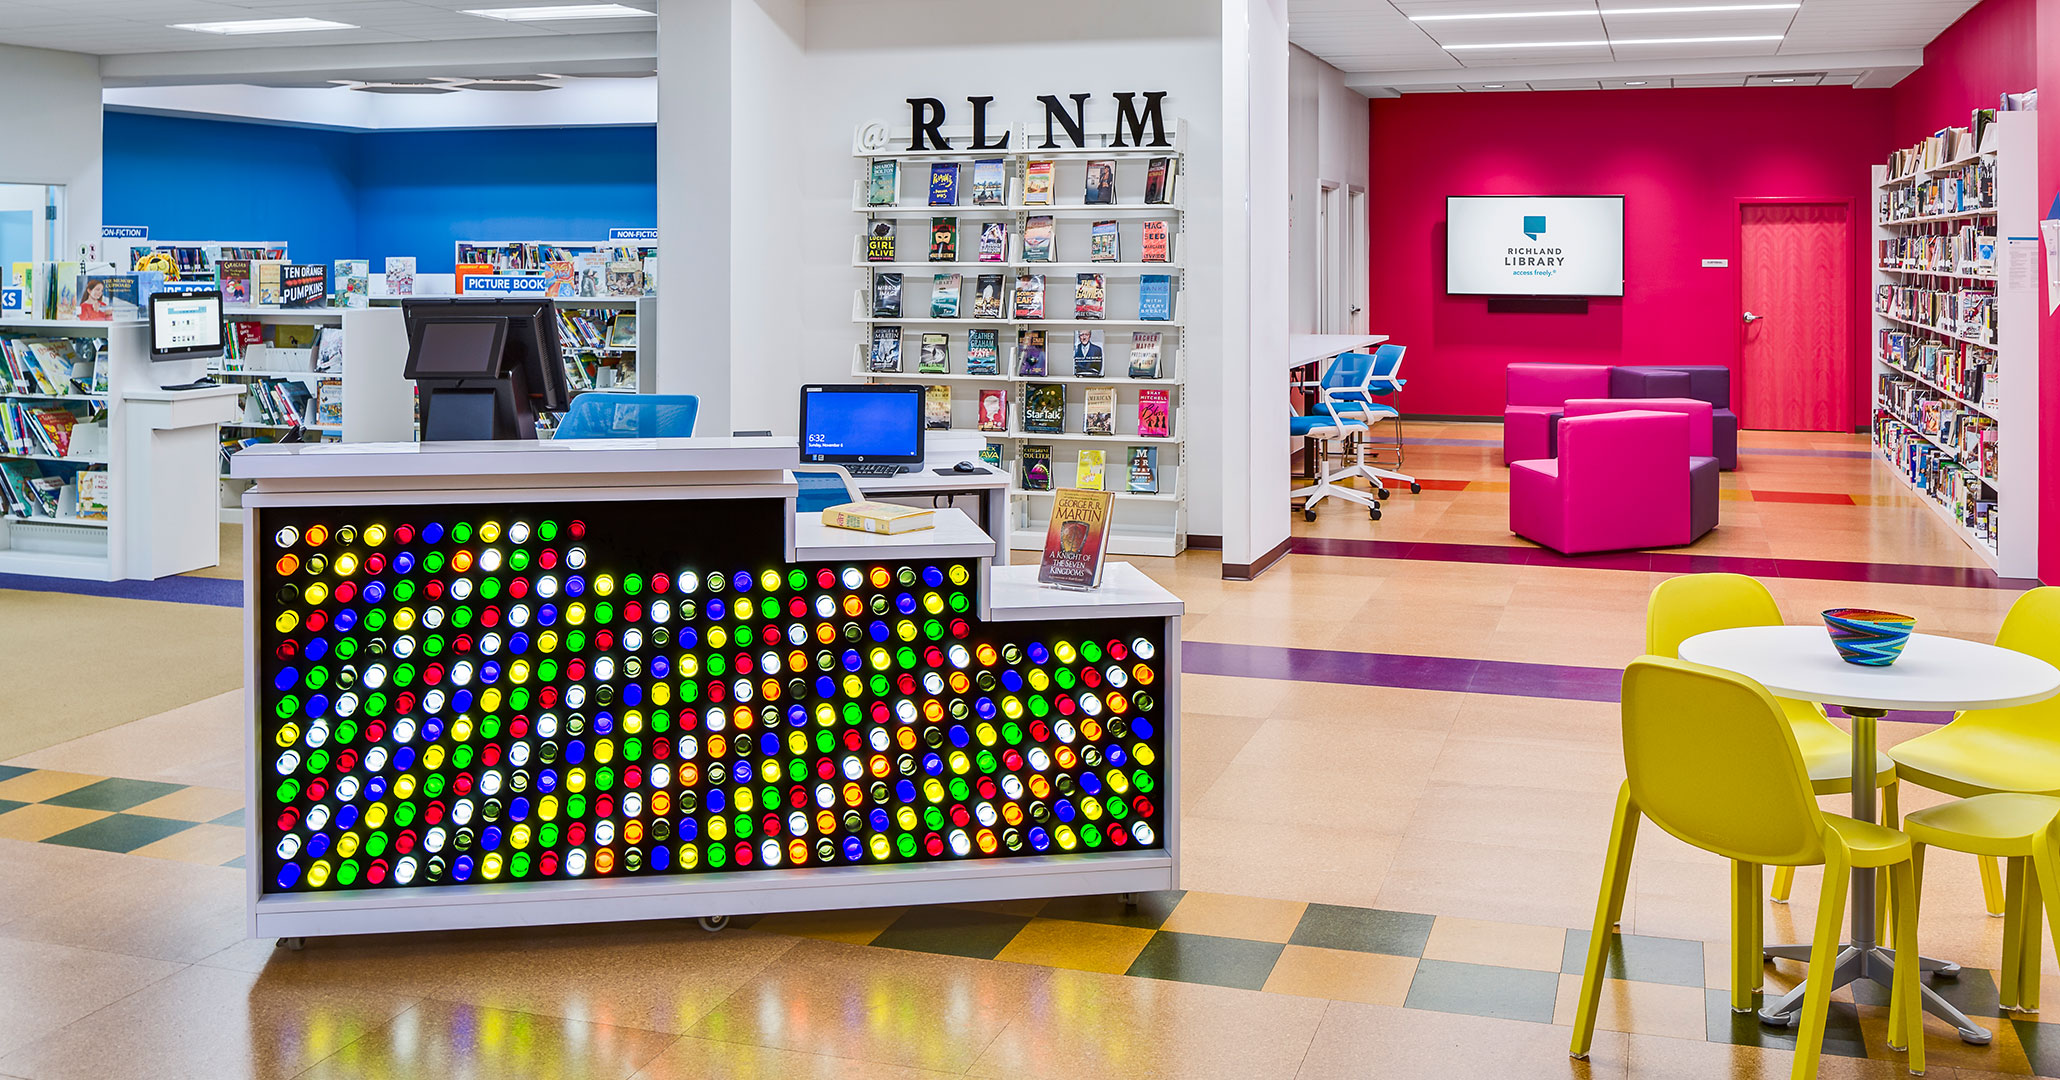 Richland County Library hired Boudreaux to design the interiors at North Main Library location in Columbia, SC.